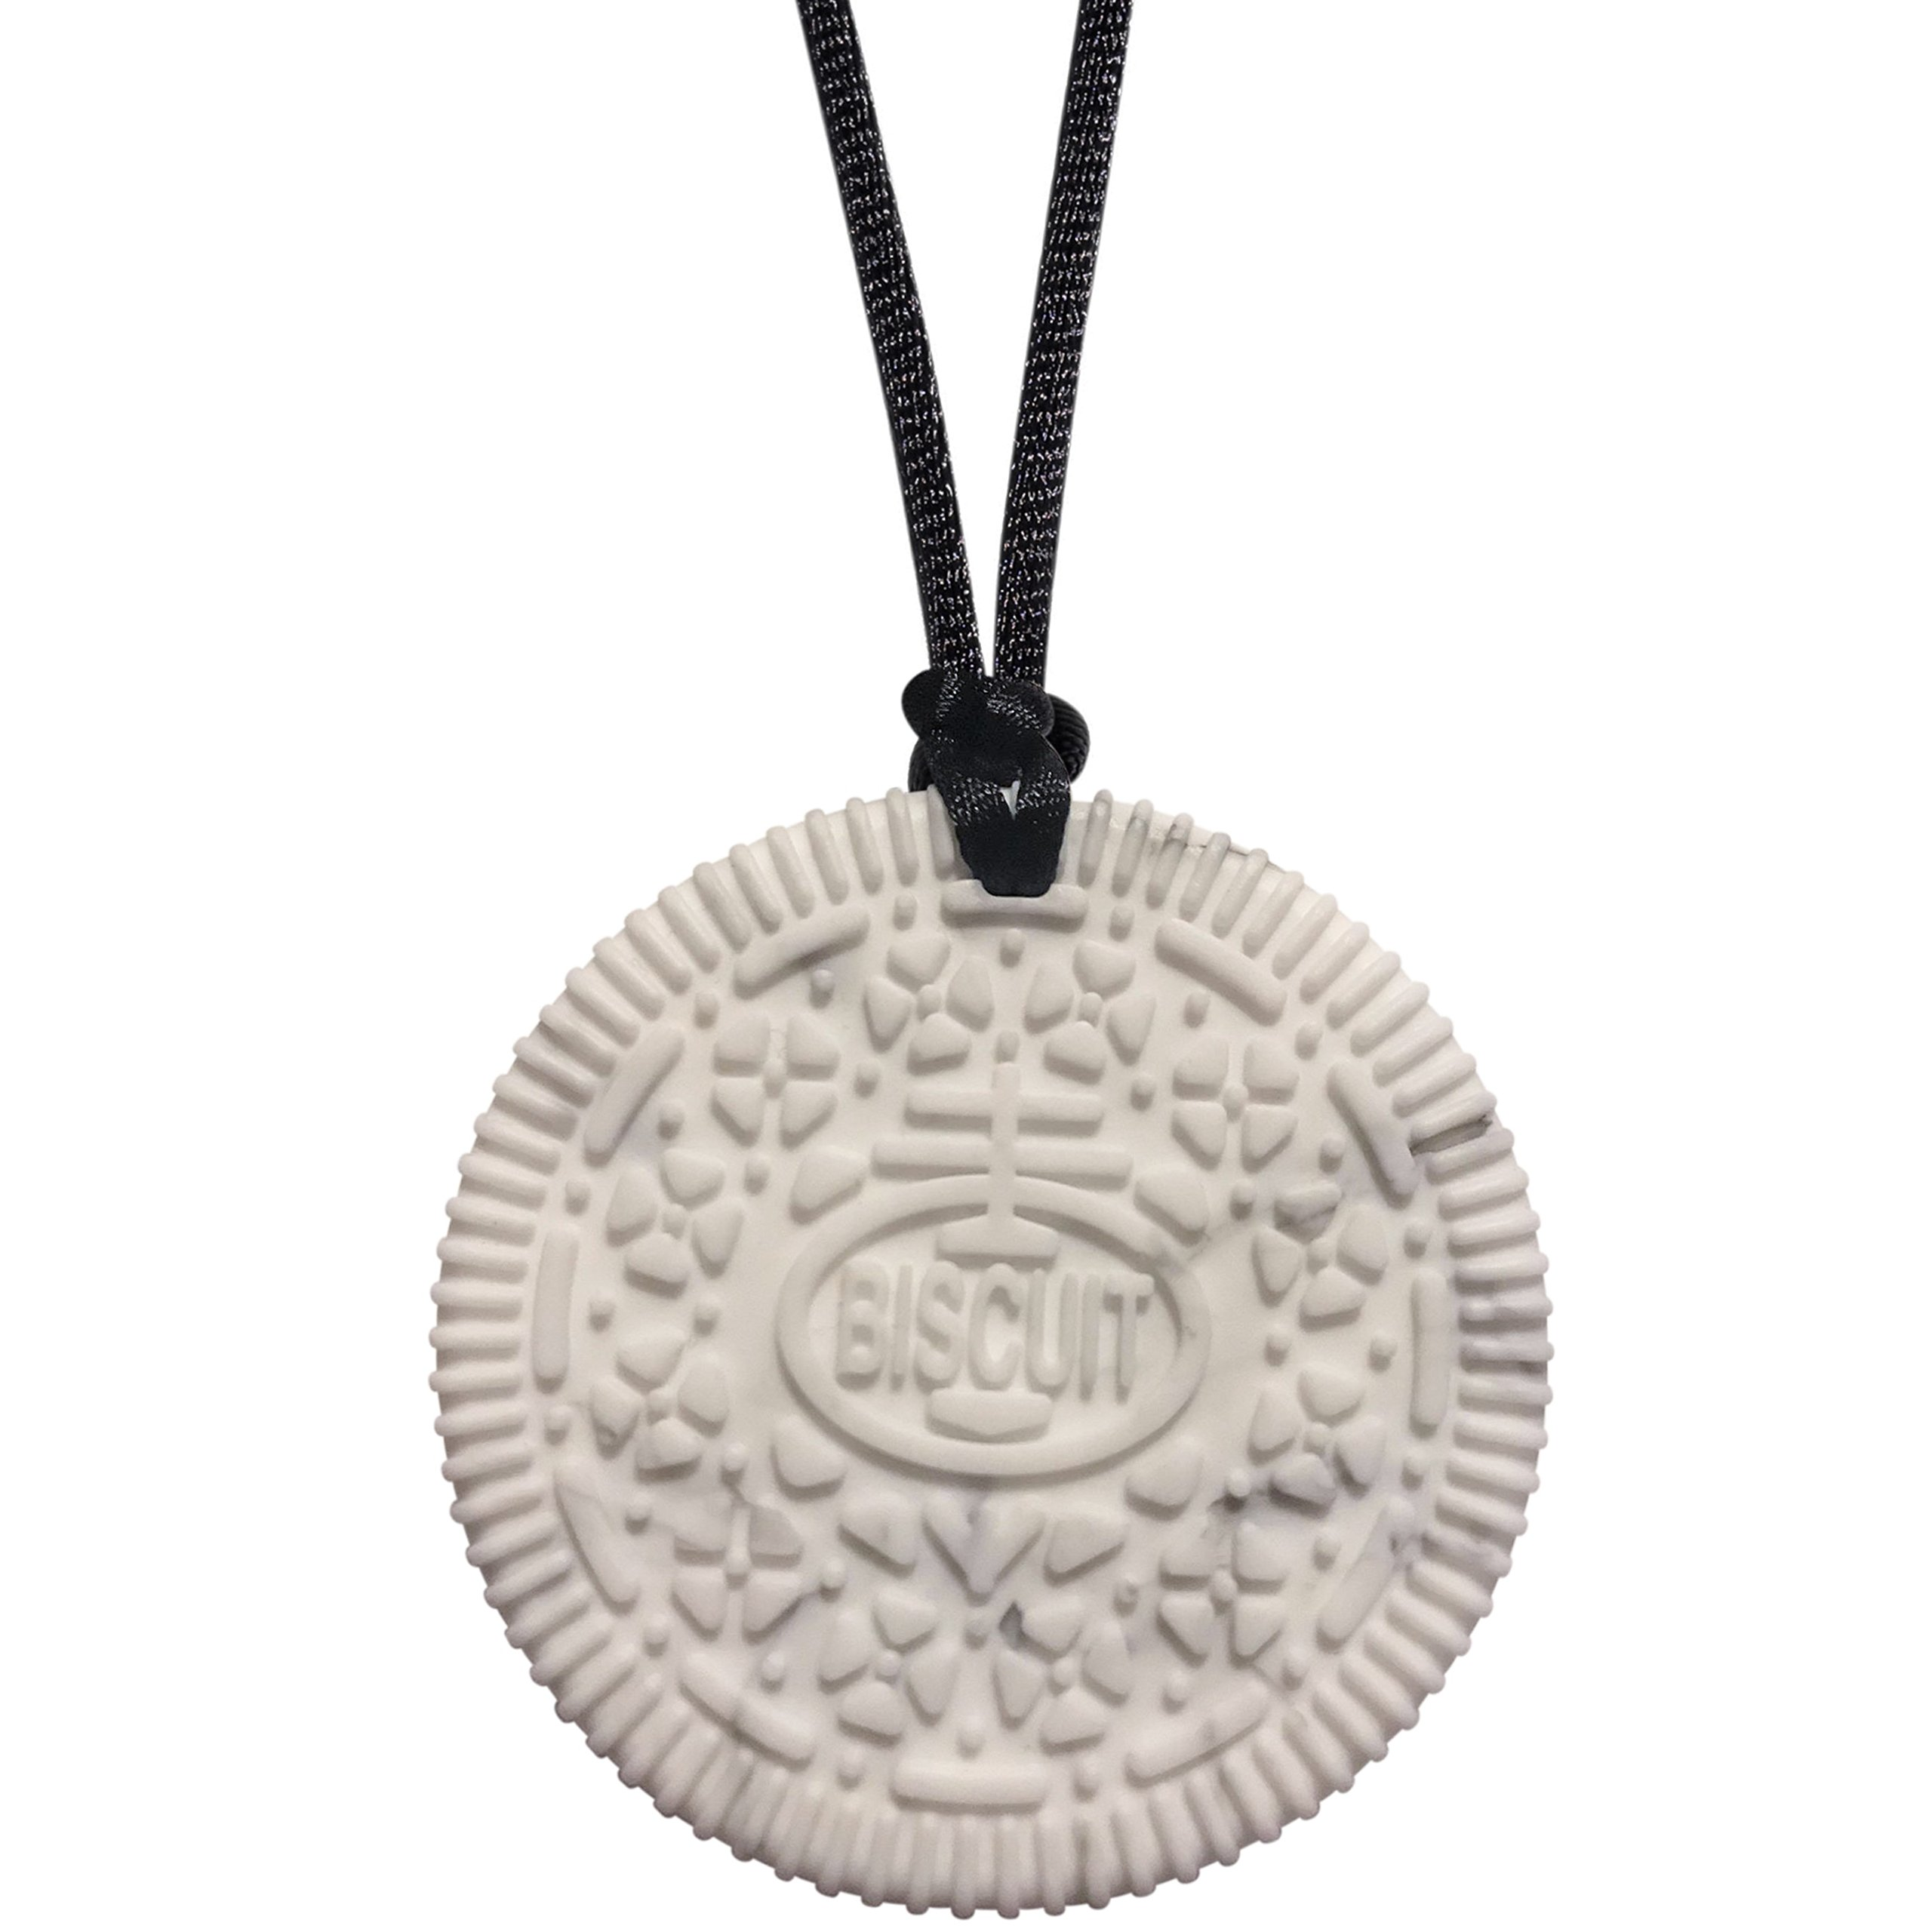 Sensory Oral Motor Aide Chewelry Necklace - Munchables Biscuit Chewy (Marble)